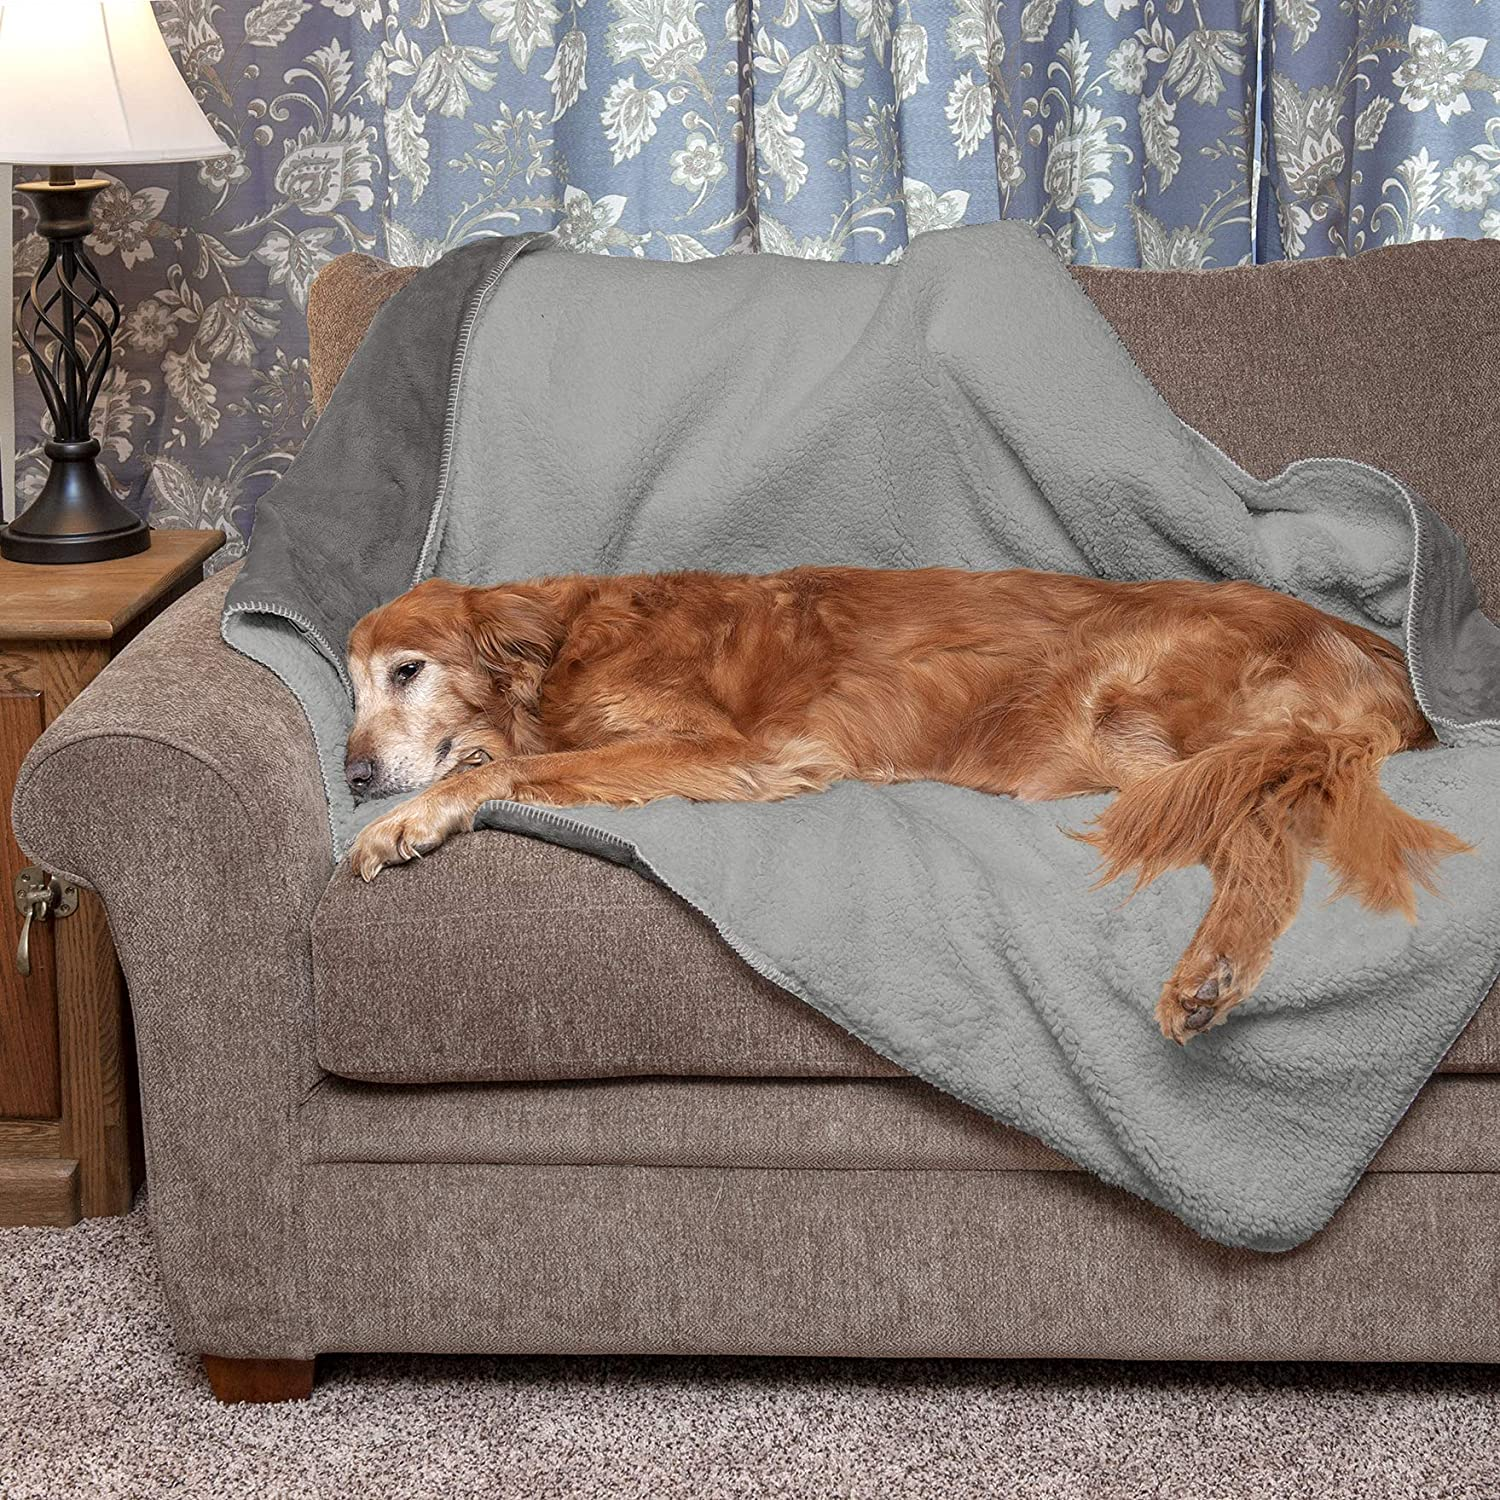 Furhaven Pet Bed Blanket for Dogs and Cats - Self-Warming Waterproof Terry and Faux Lambswool Thermal Dog Throw Blanket, Washable, Silver Gray, Large : Pet Supplies